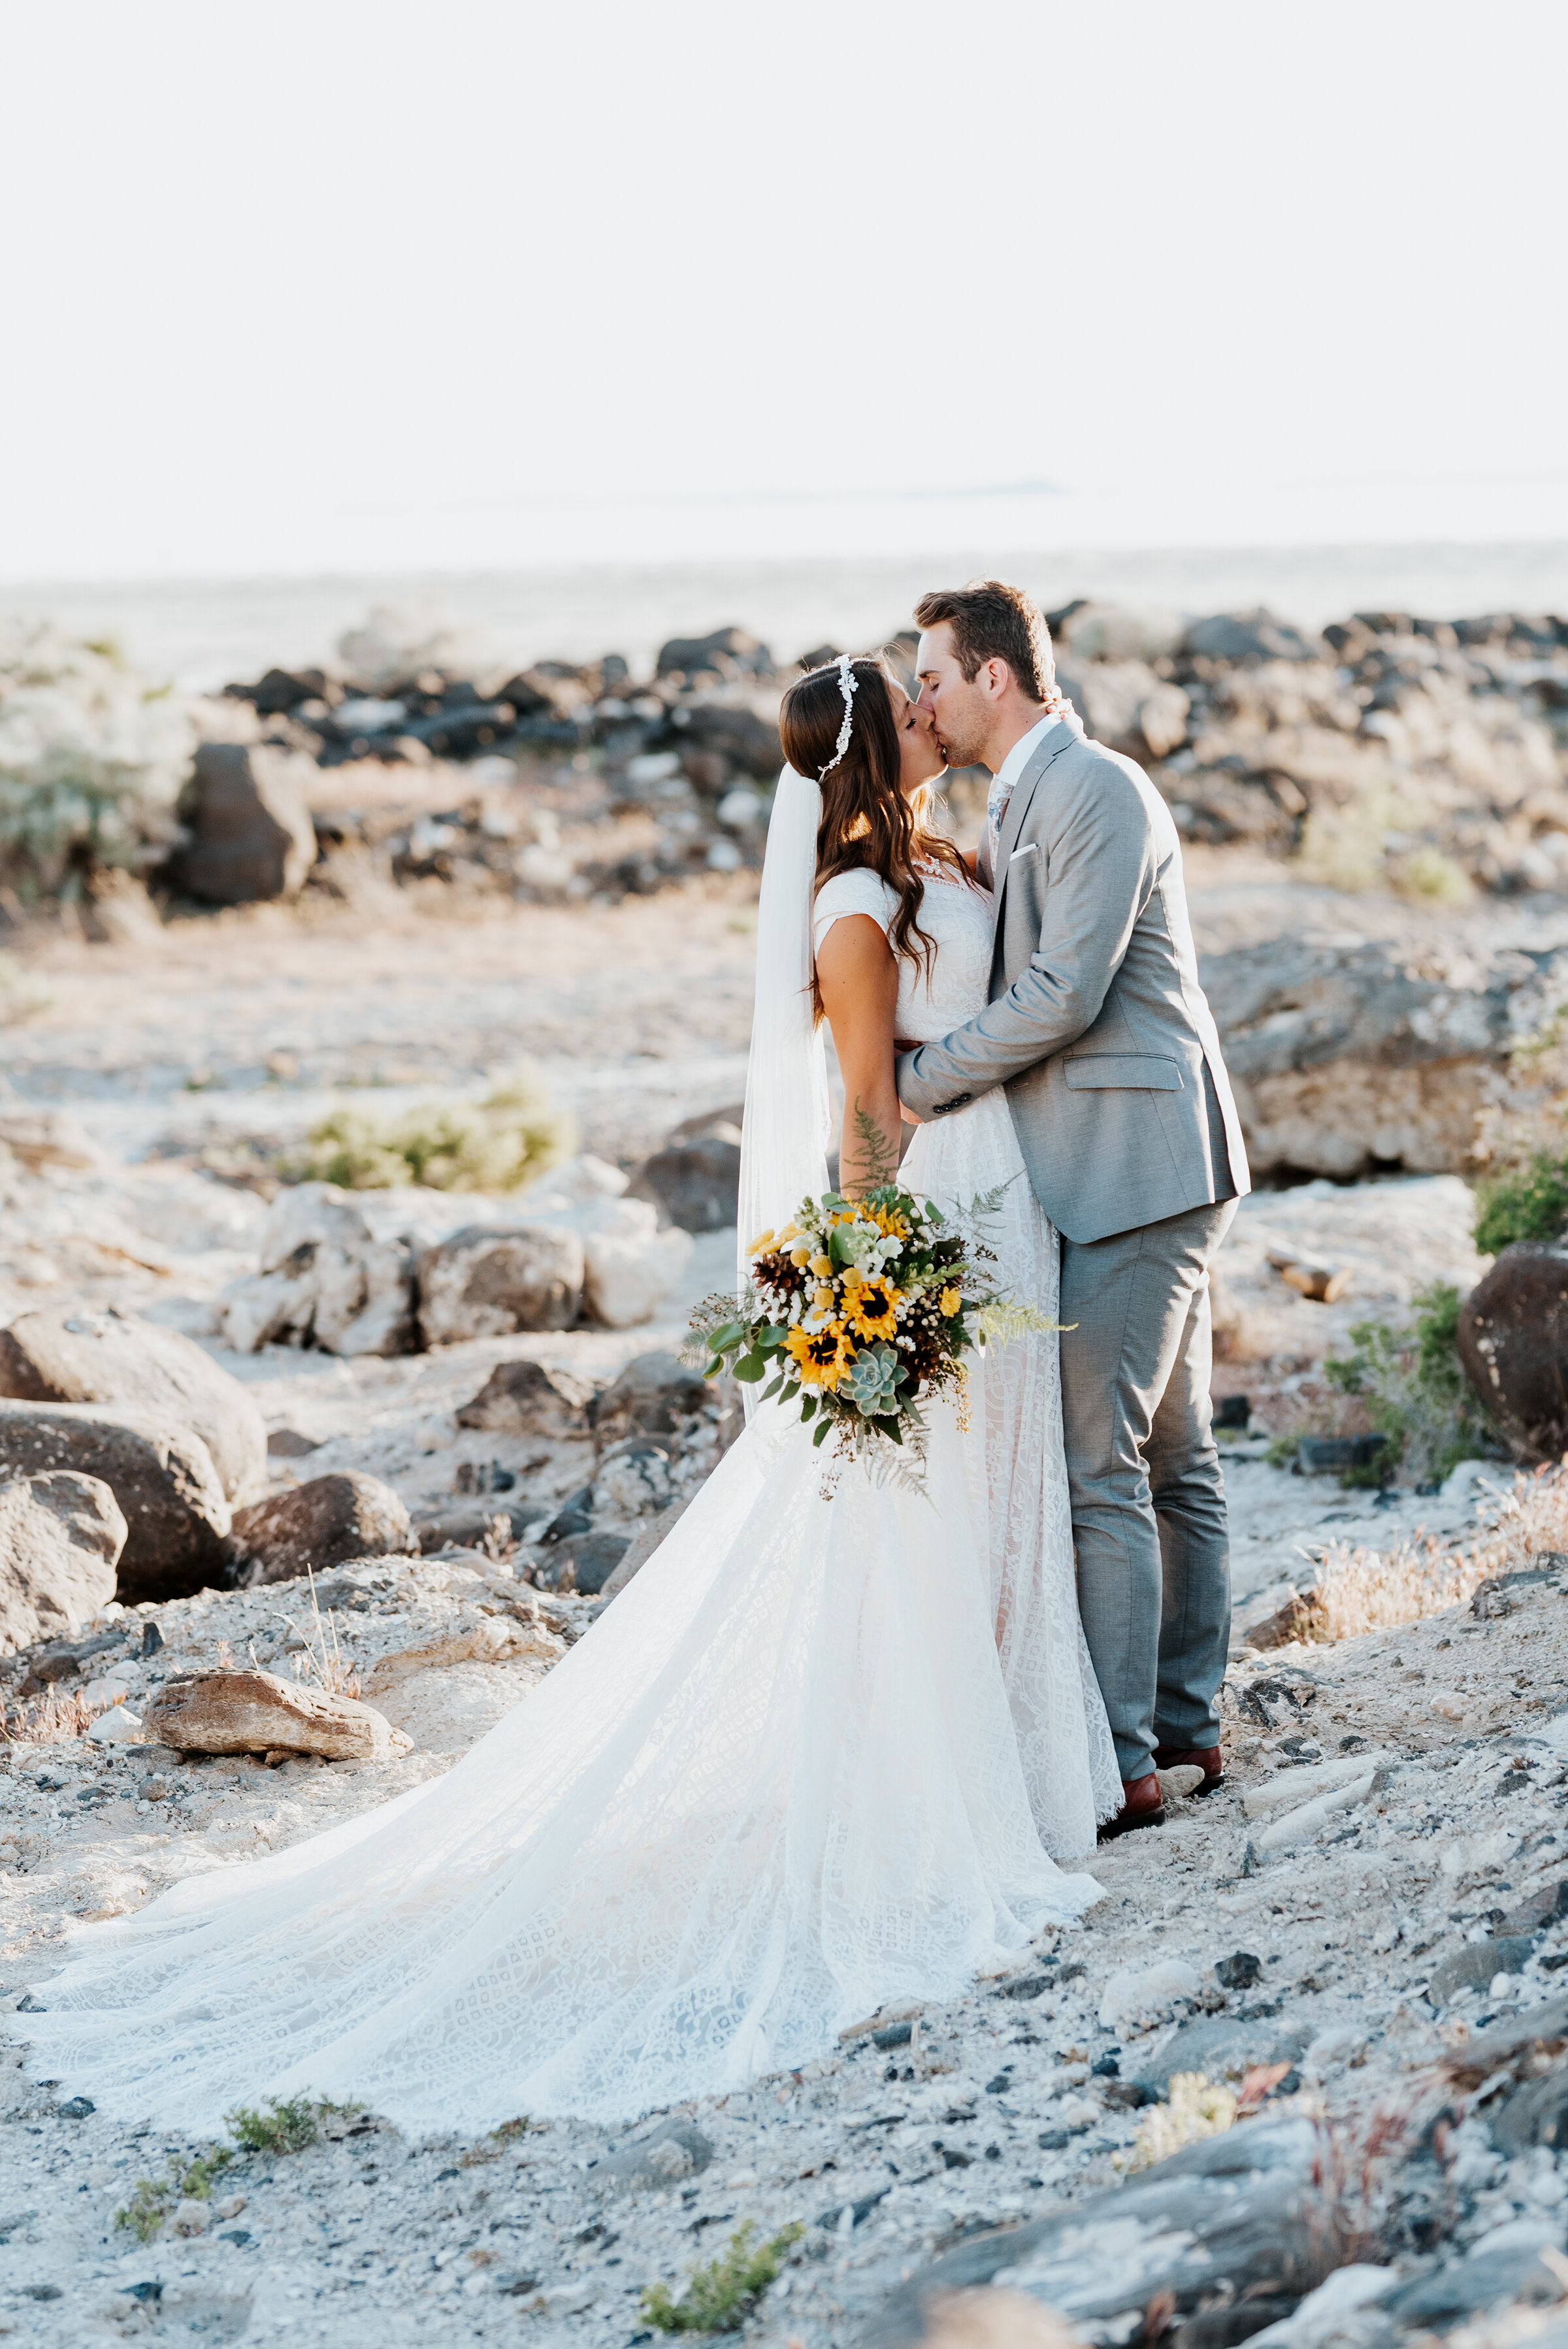 Bride and groom share an intimate kiss at their sunset session at the Great Salt Lake Spiral Jetty. sunflowers gorgeous rocky shore northern utah #spiraljetty #GreatSaltLake #formalsession #SaltFlats #sunsetphotosession #NorthernUtah #weddingphotographer #formalphotographer #brideandgroom #outdoorformals #weddingformalphotography